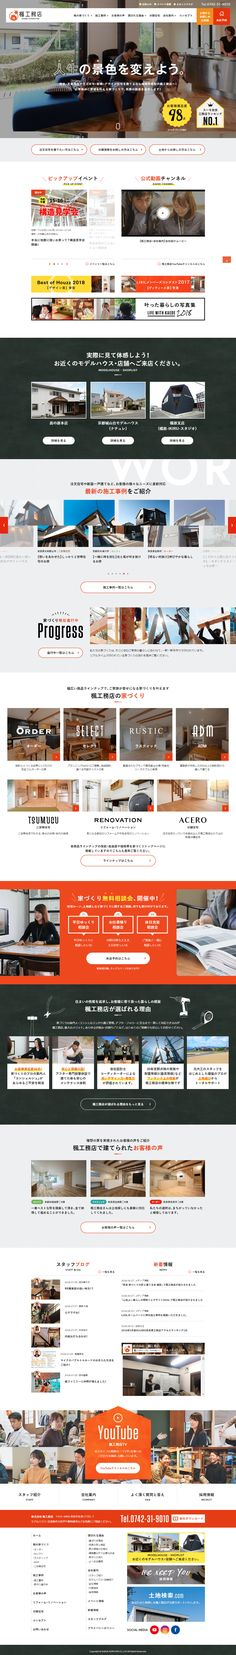 Interface Web, Web Design, Service Design, Website, Website Template, Site Design, Page Layout, Design Web, Website Designs